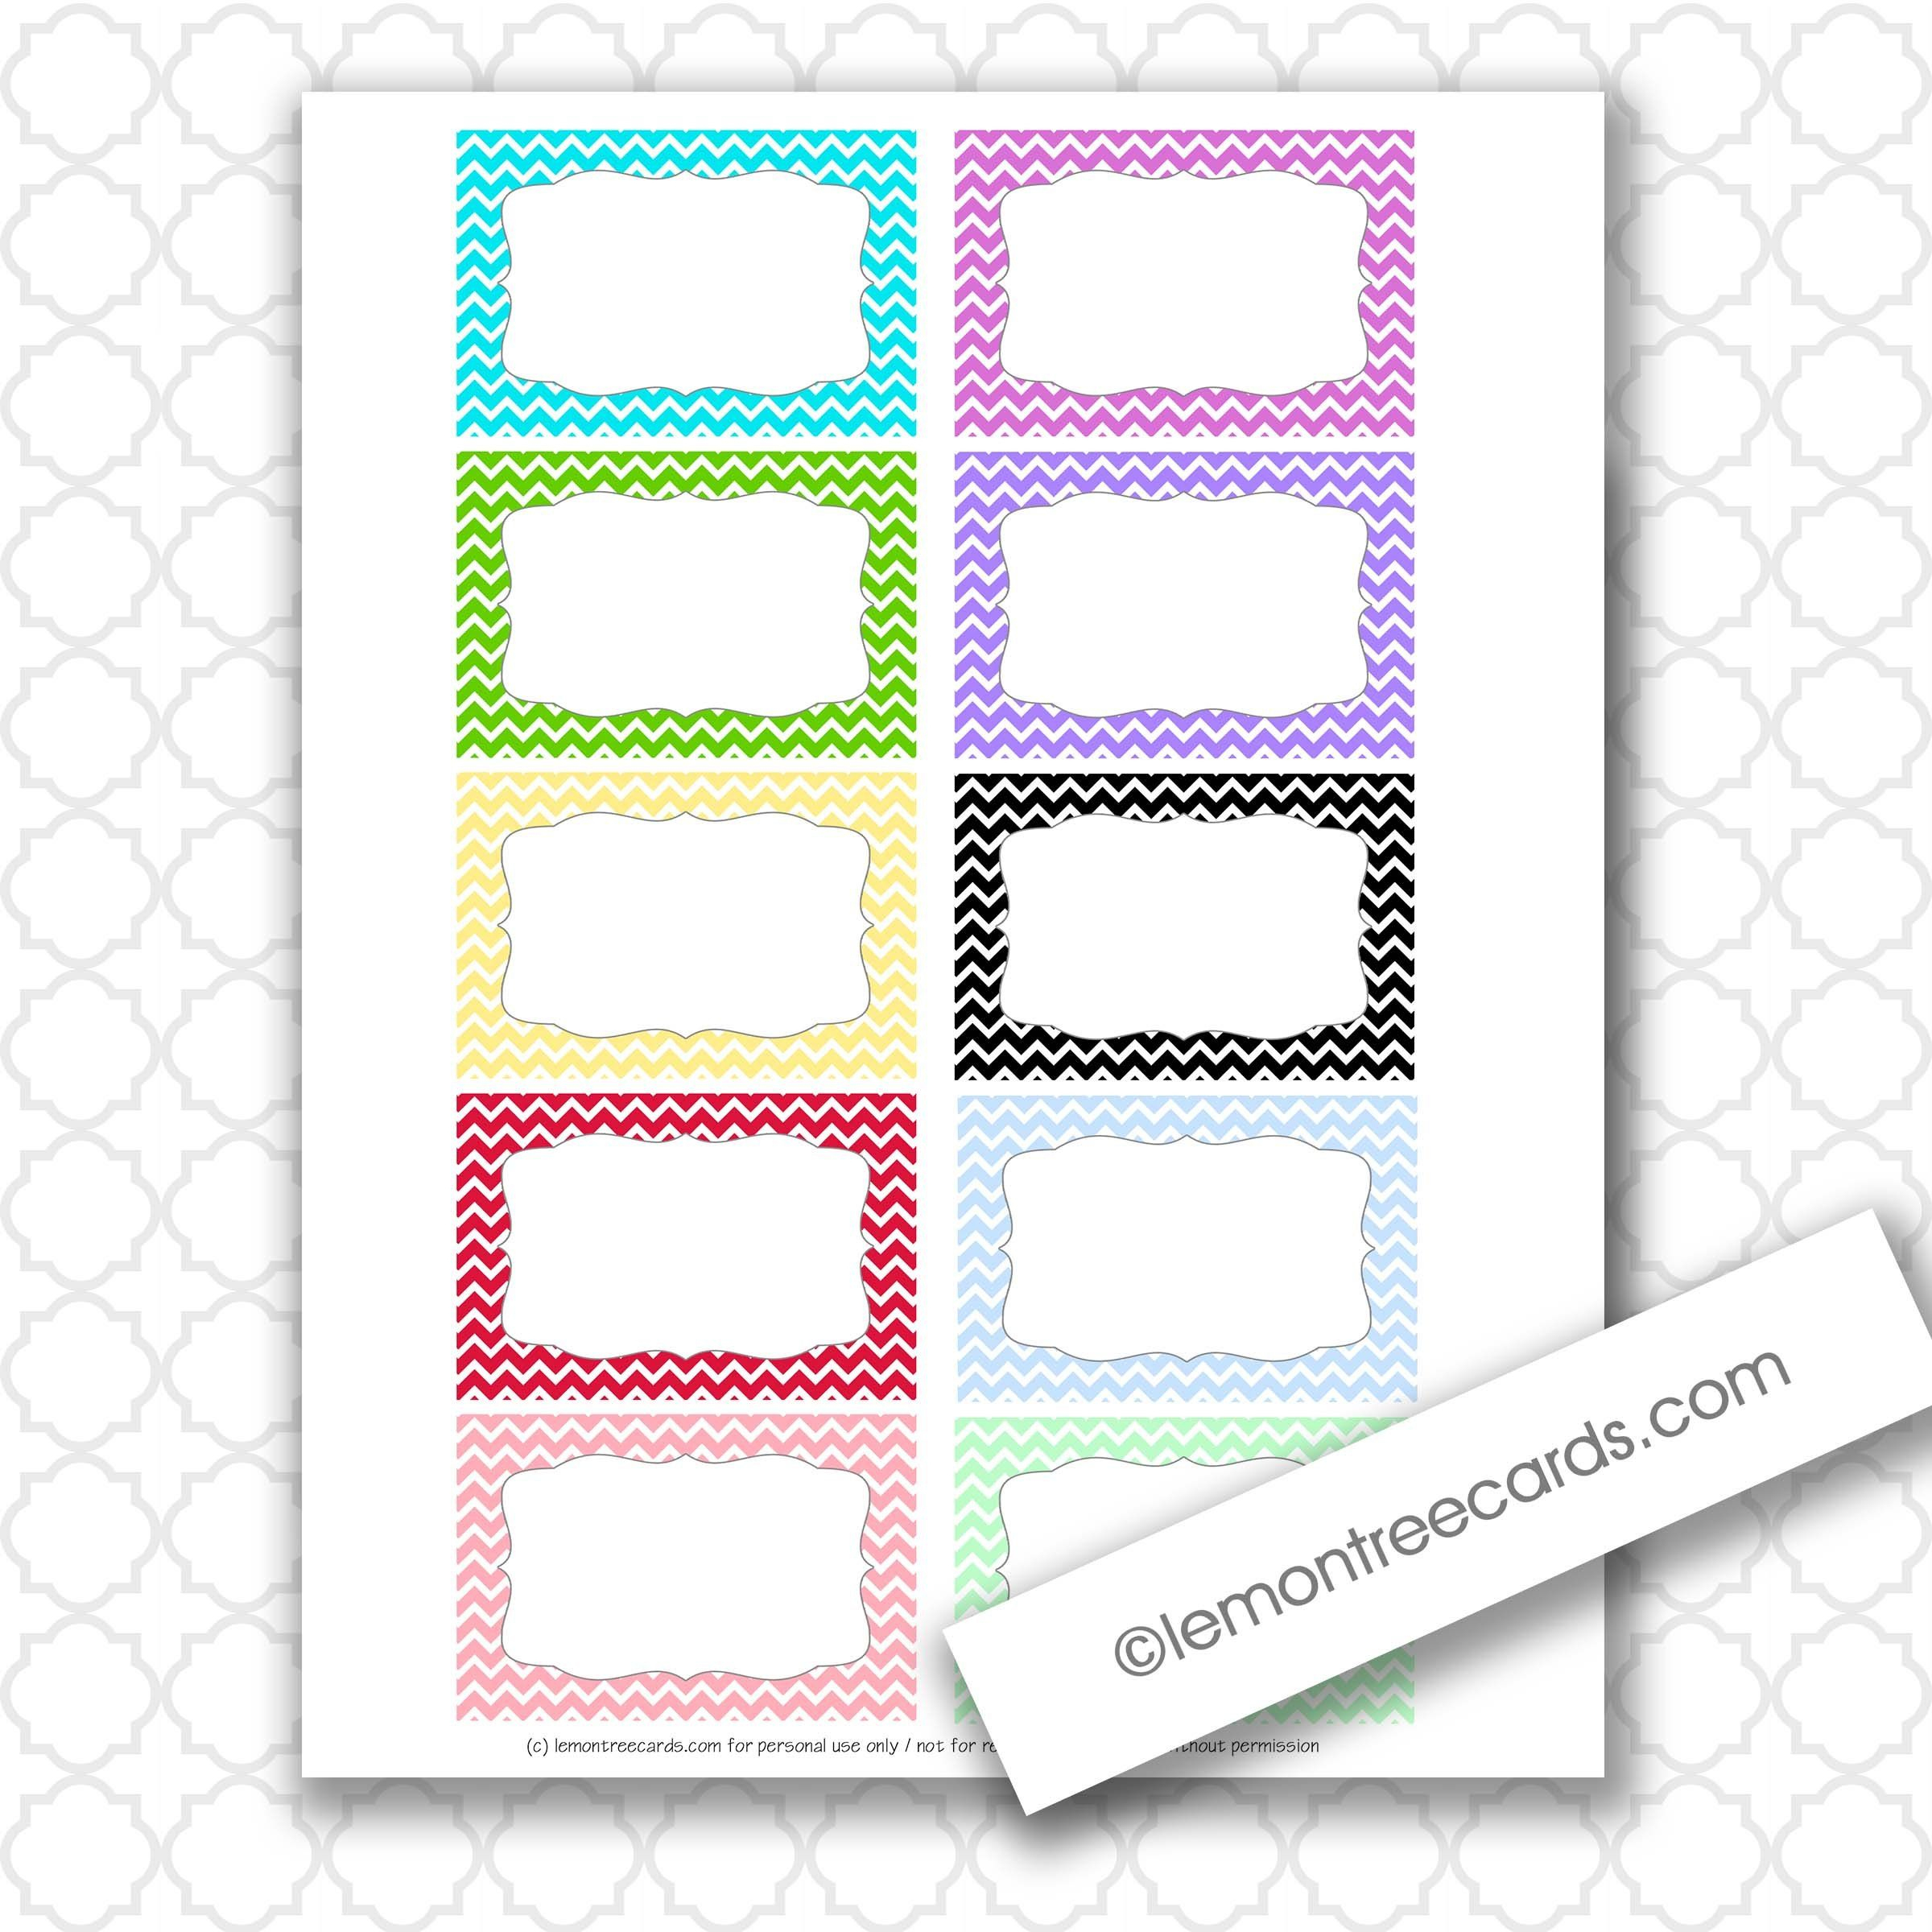 Image Result For Cute Free Index Card Template | Organization - Free Printable Blank Index Cards